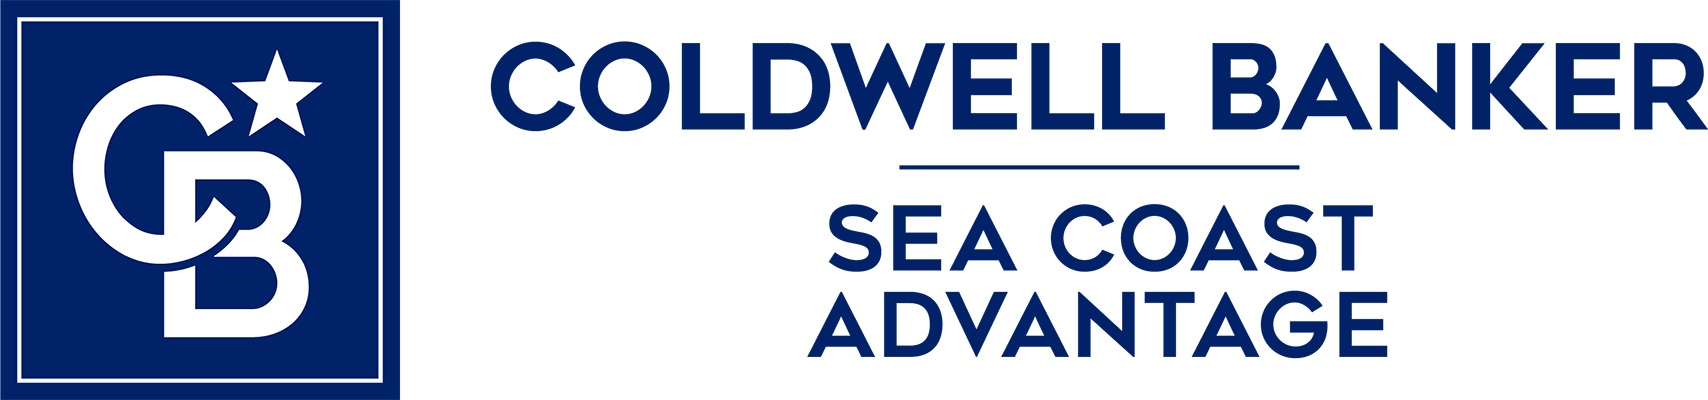 Ed Dodge - Coldwell Banker Sea Coast Advantage Realty